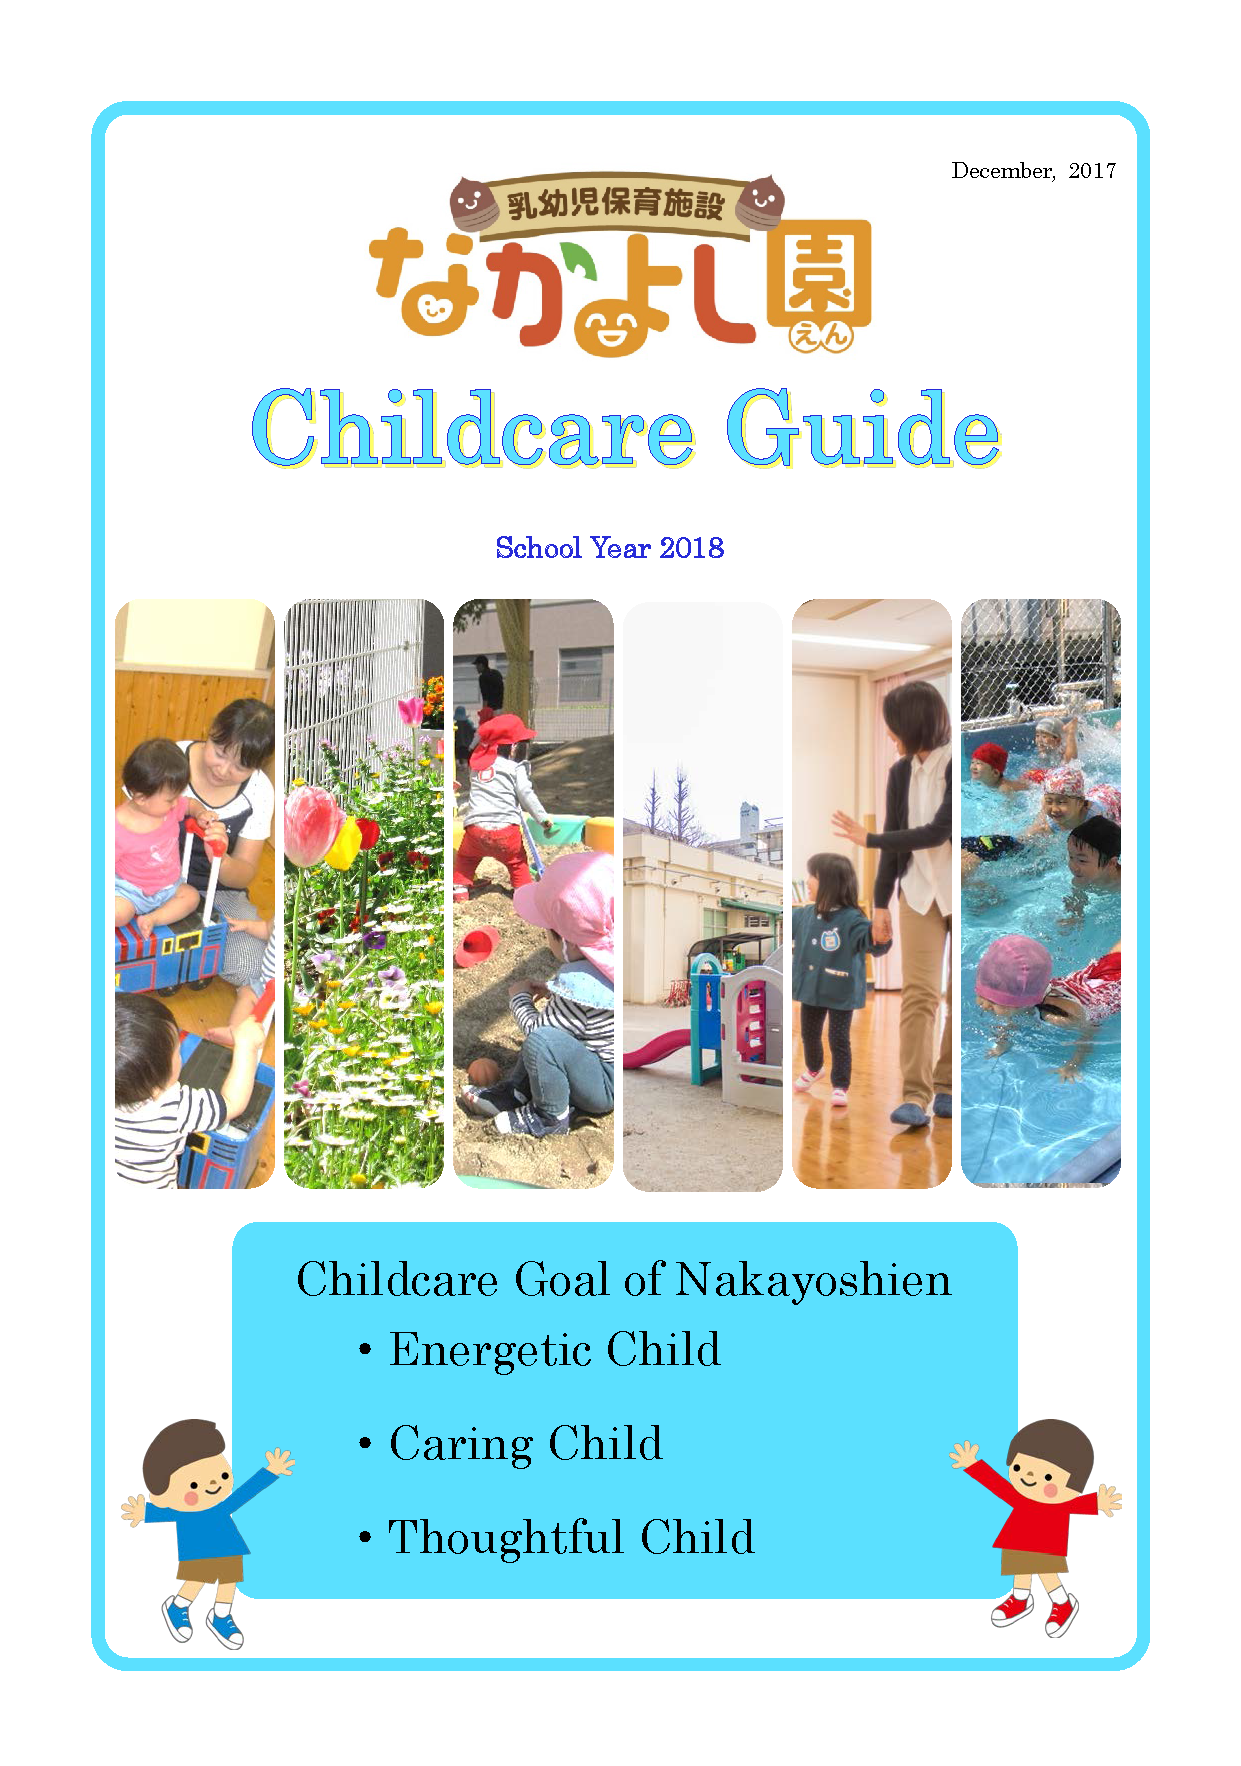 School Year 2018 Childcare Guide